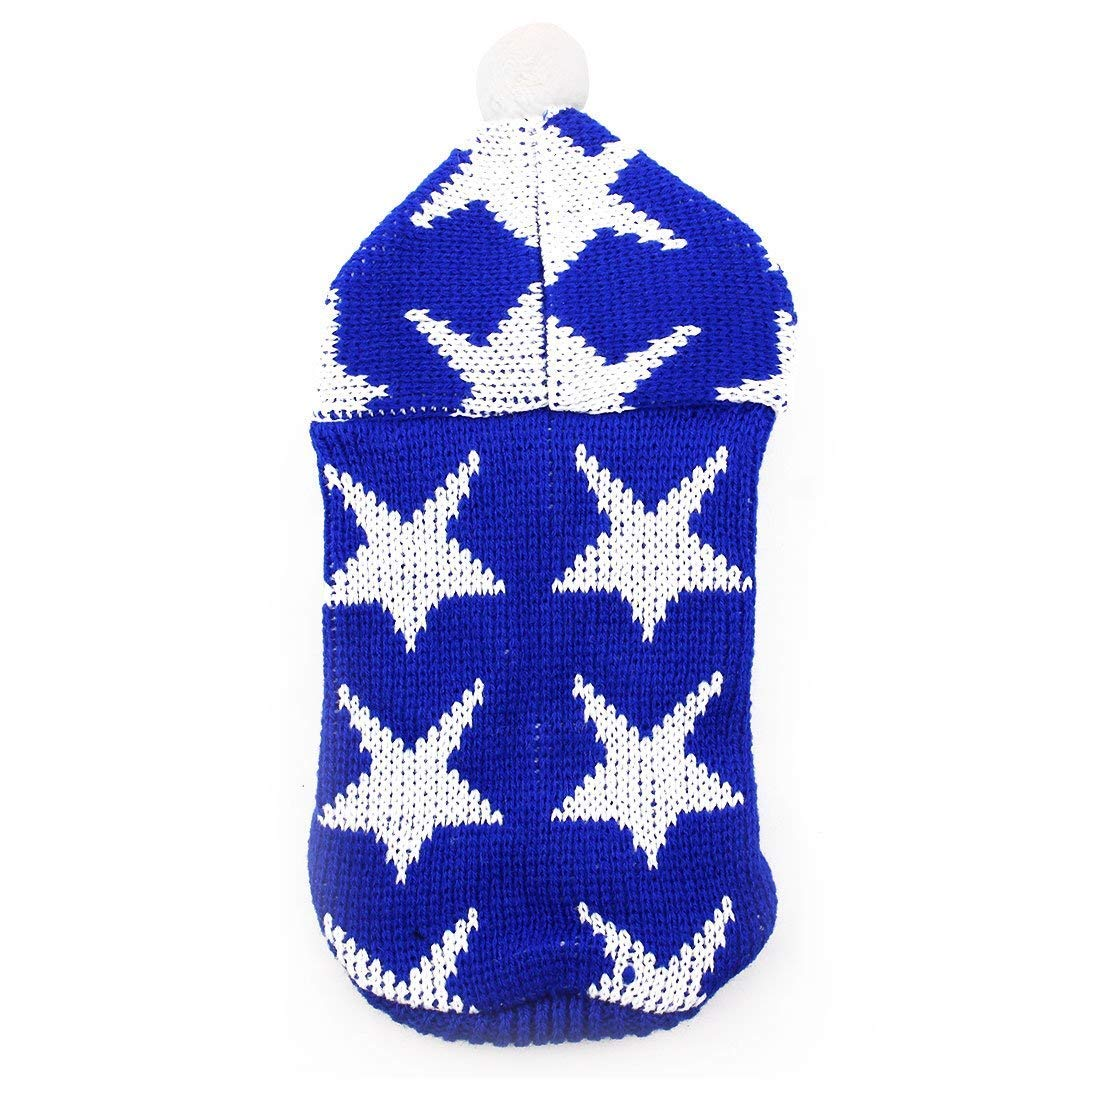 1Pc S, Dark bluee   Star Pattern Woolen Pet Teddy Knitted Winter Warm Hoodie Sweater Coat Clothes Apparel Costume